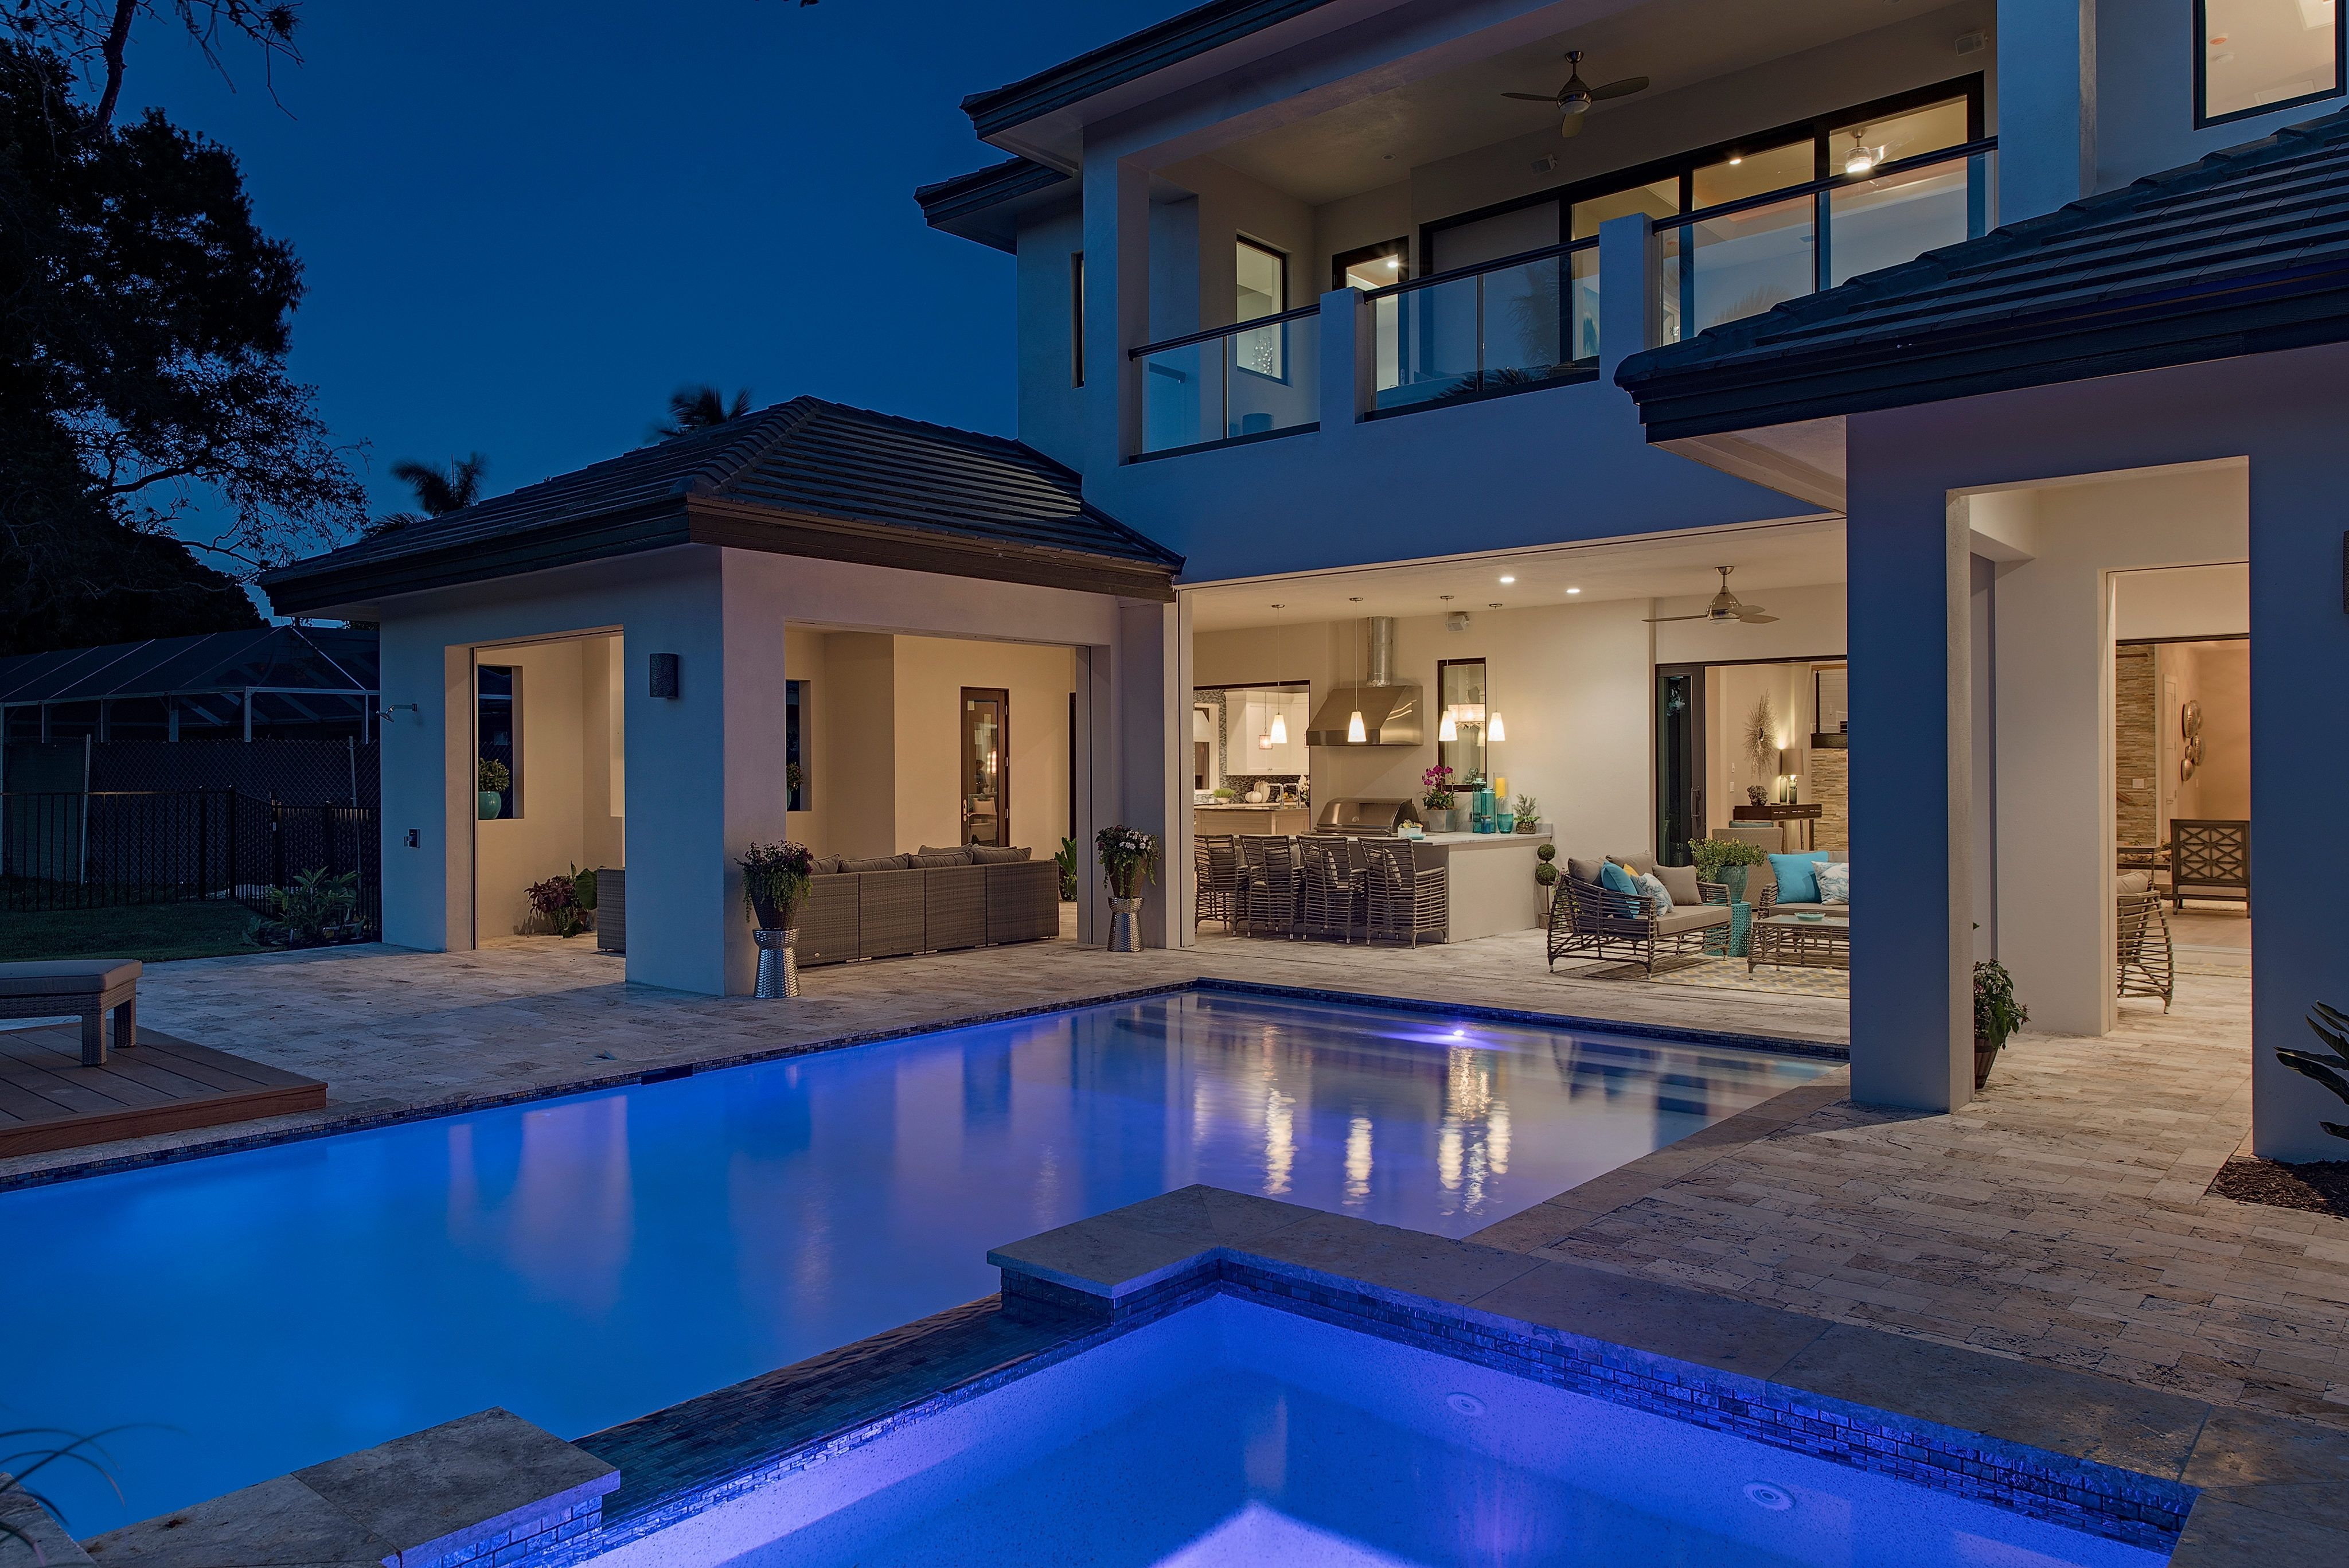 Infinity pool and spa rear elevation at dusk home custom for Pool design naples fl